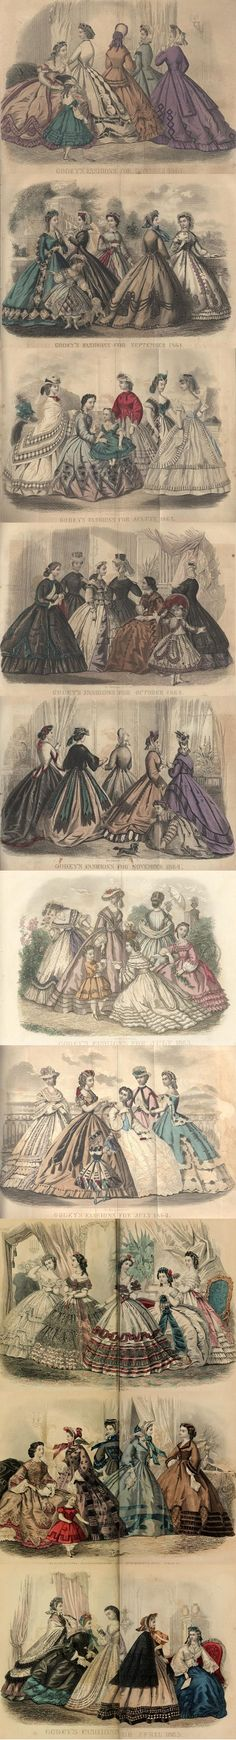 Here is another grouping from the Godey's Lady's Books that can be read on the DIY Collaboratorium's Library page